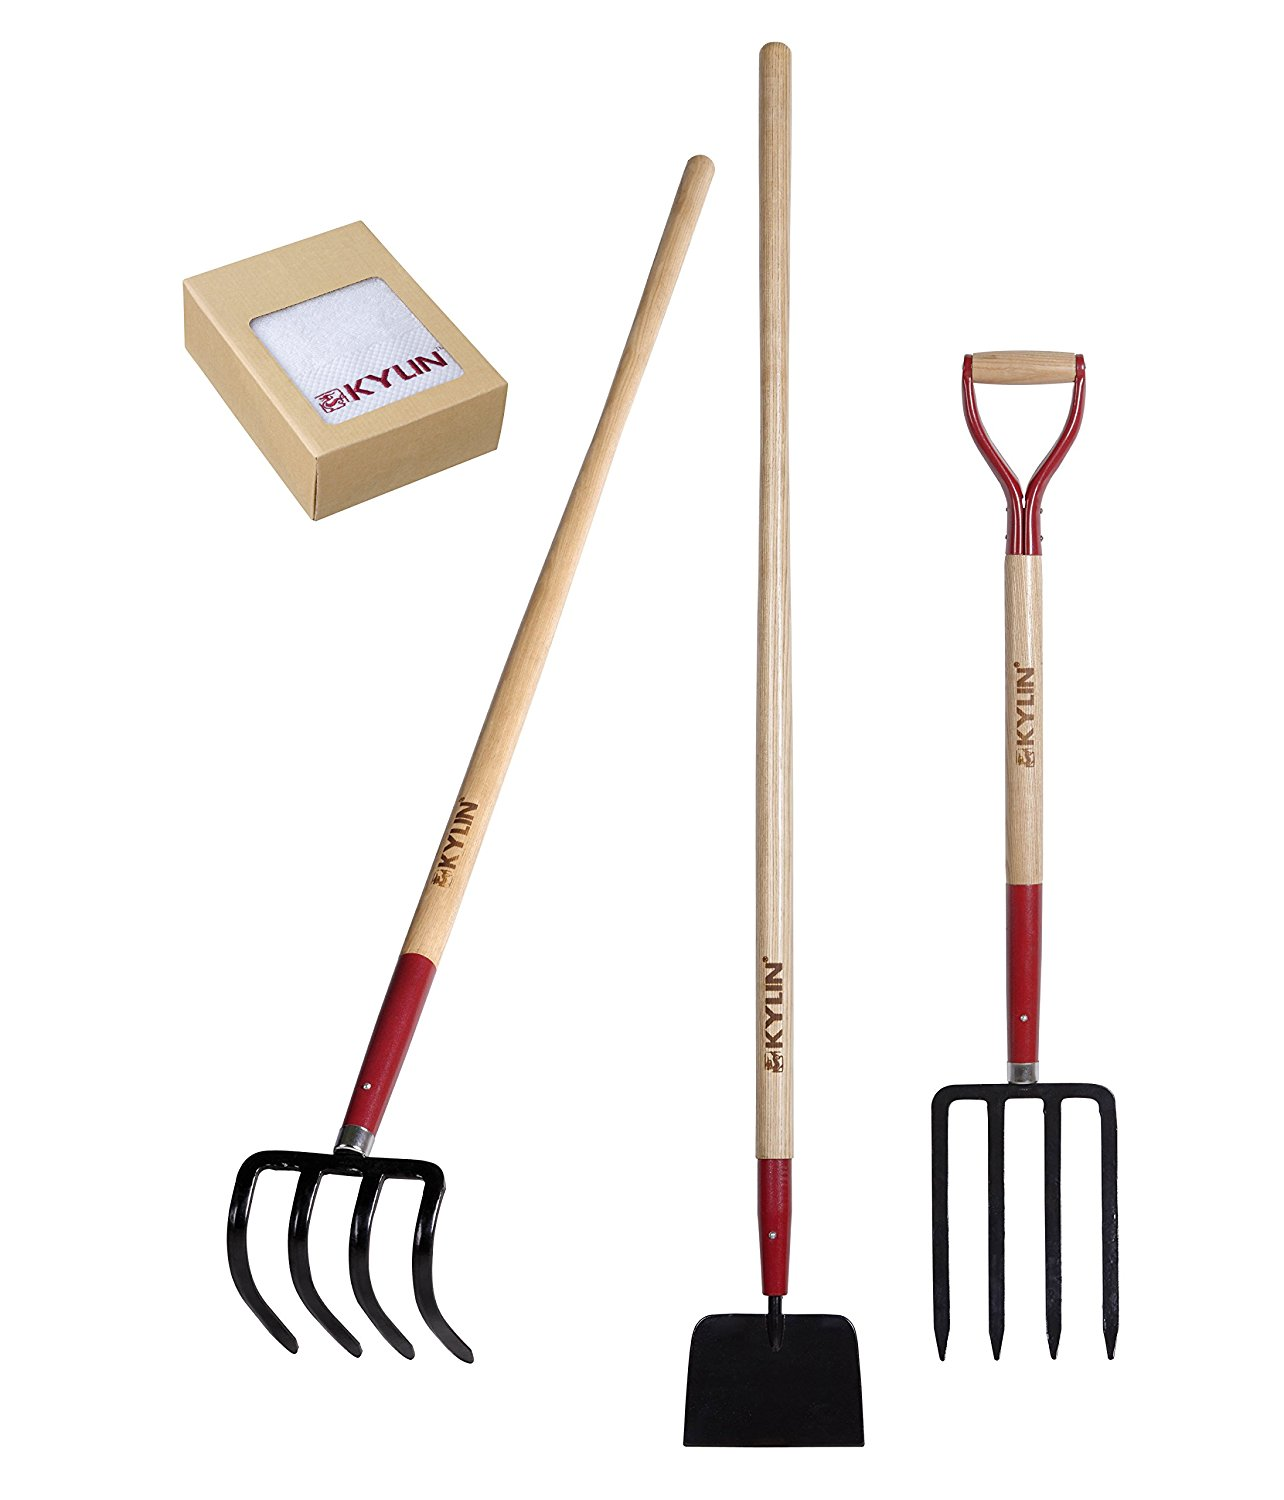 Kylin 3-Piece Forged Garden Tools Set - Include Forged Potato Hook/ Forged Sidewalk Scraper / Forged Spading Fork - Quality Guarantee - Sale!